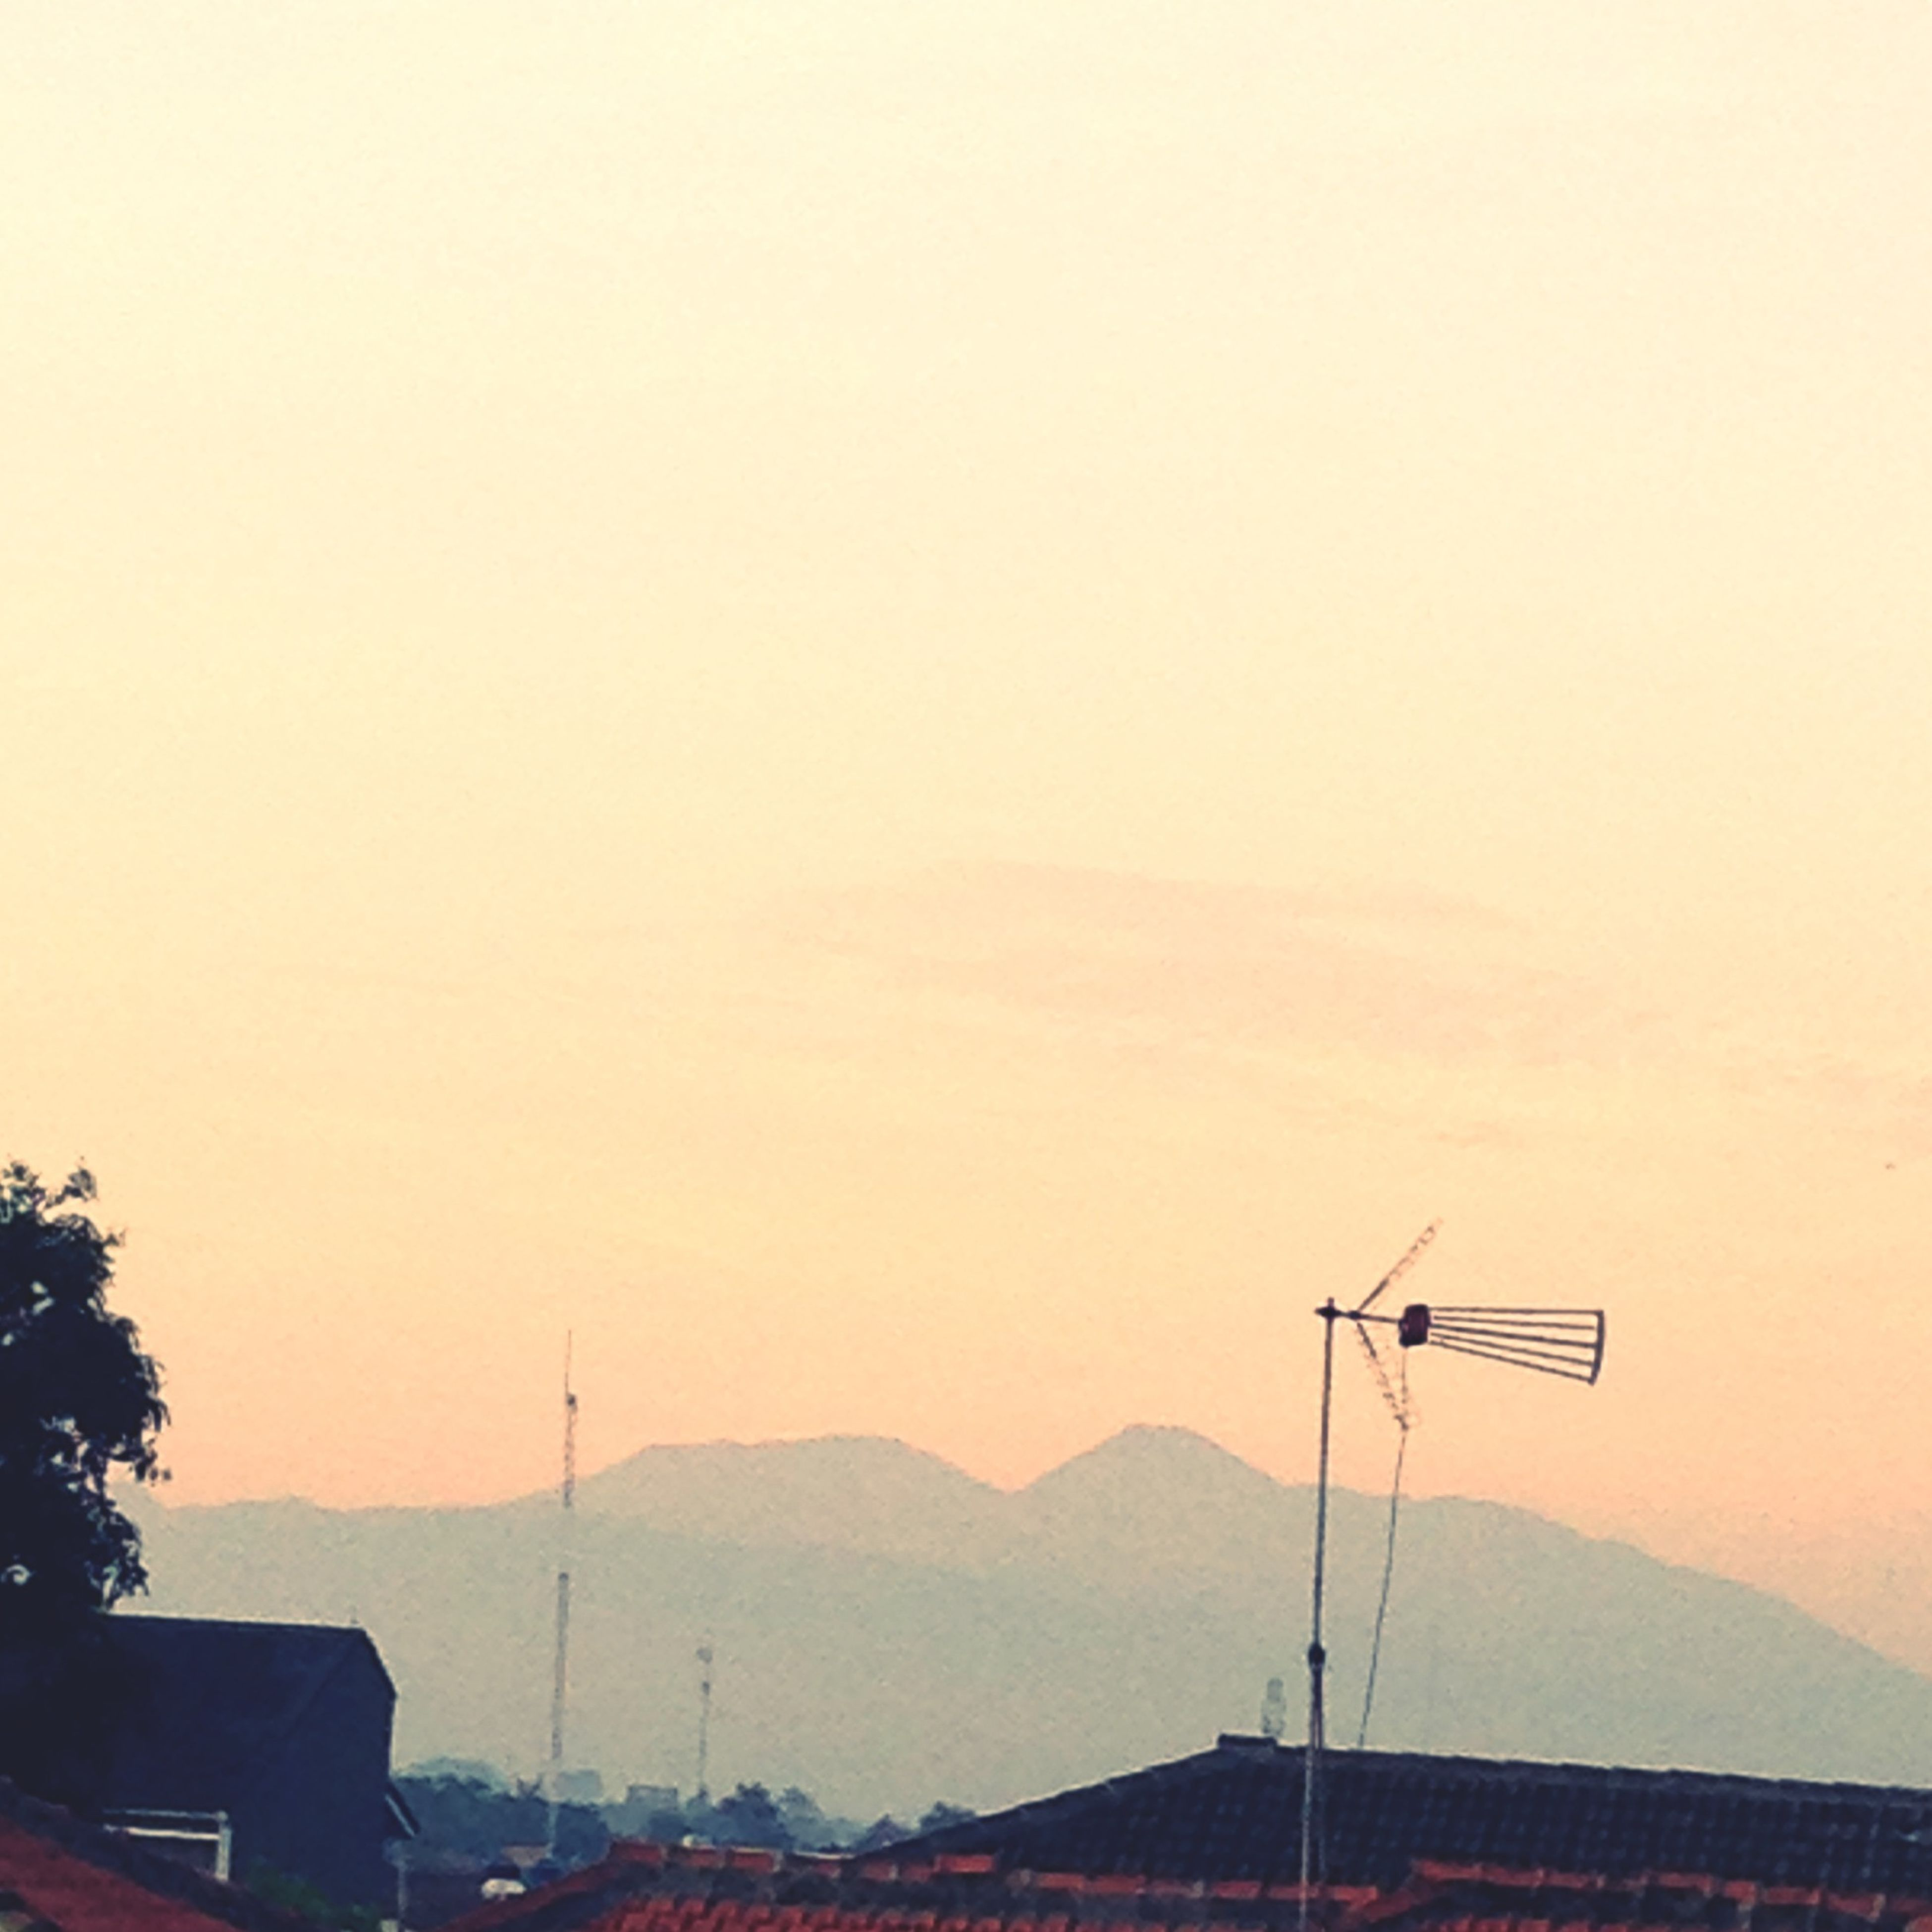 copy space, sunset, mountain, clear sky, scenics, beauty in nature, tranquil scene, building exterior, nature, landscape, tranquility, sky, built structure, silhouette, orange color, architecture, outdoors, house, mountain range, no people